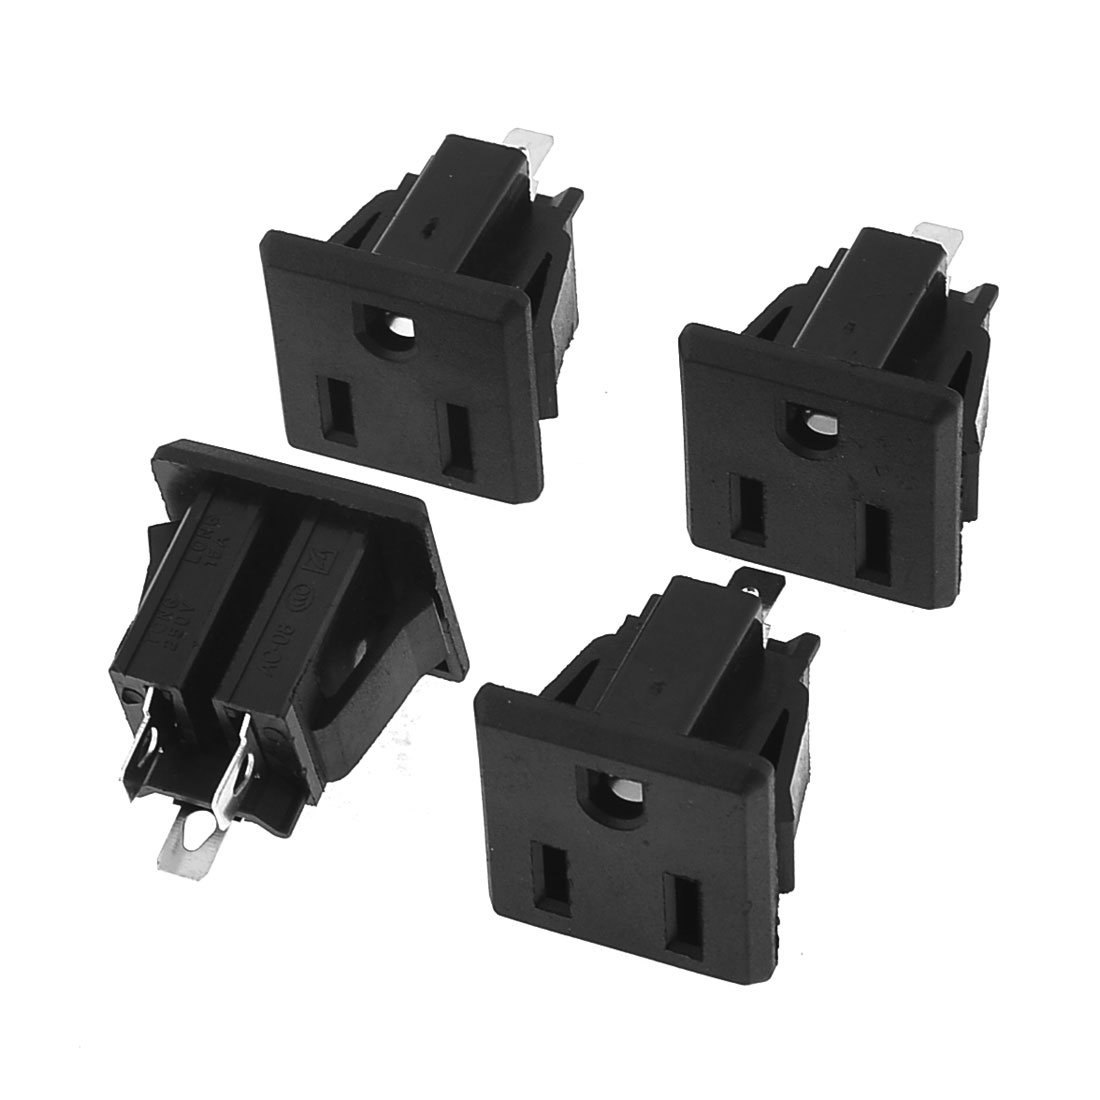 4 x Black Plastic 3 Pins Terminals US Power Socket AC250V 15A